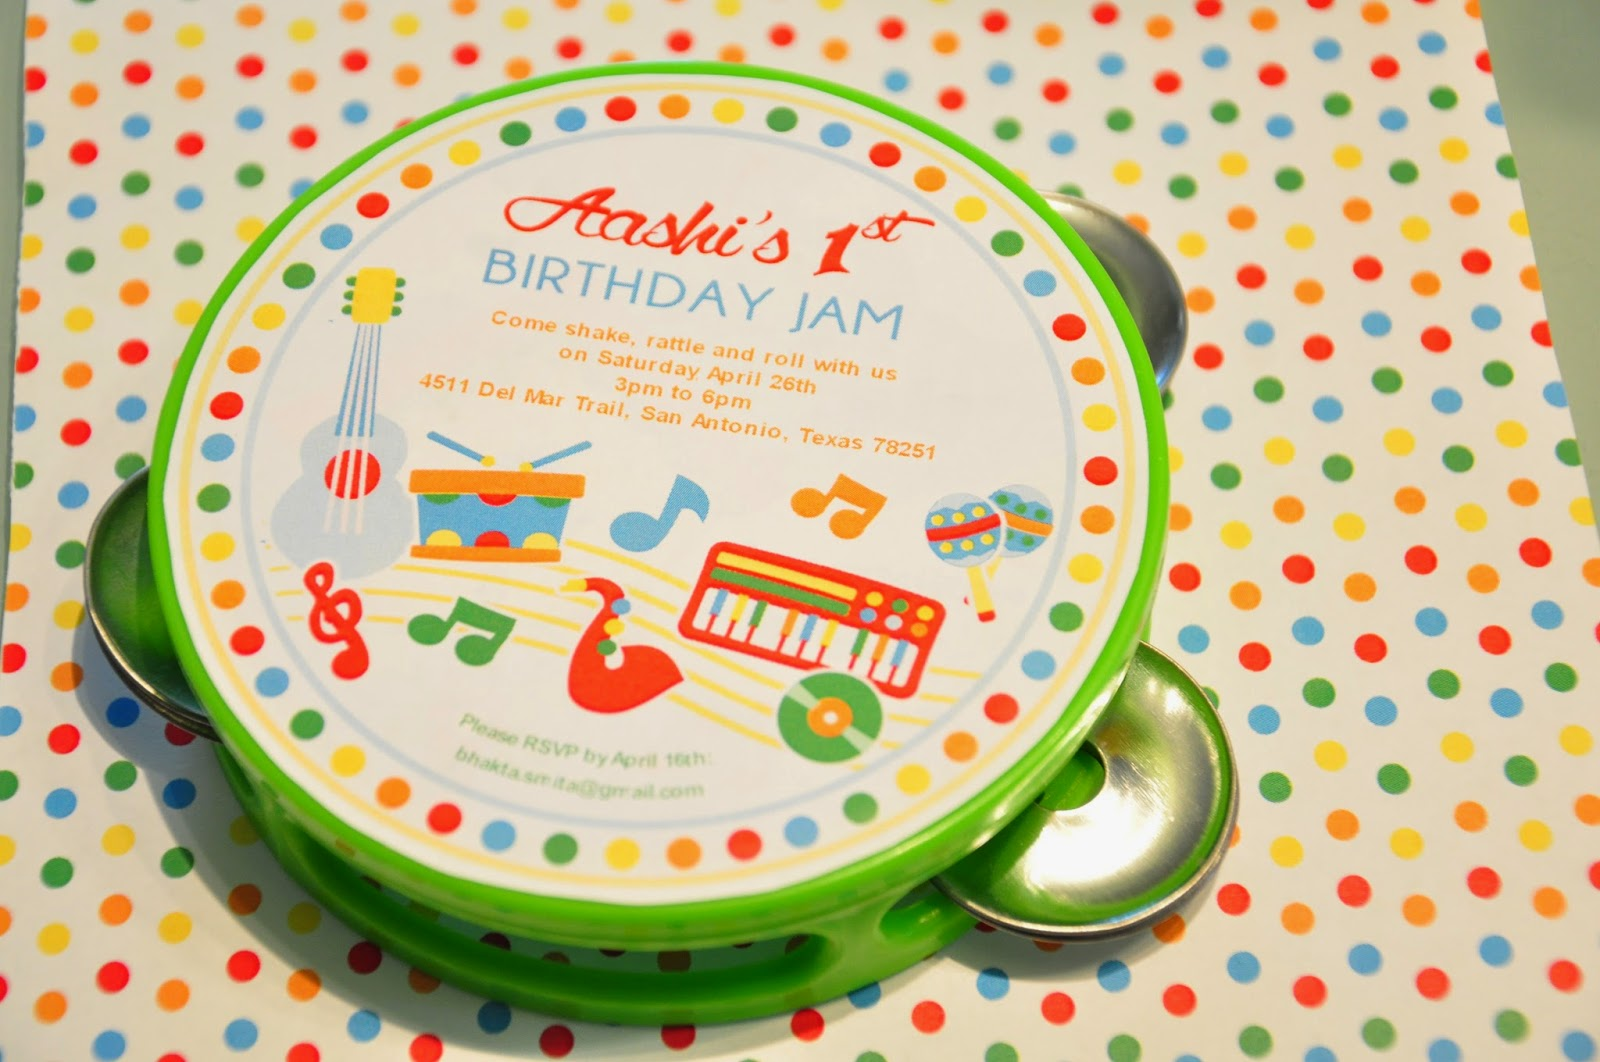 The party wall baby jam a music inspired 1st birthday party baby jam a music inspired 1st birthday party filmwisefo